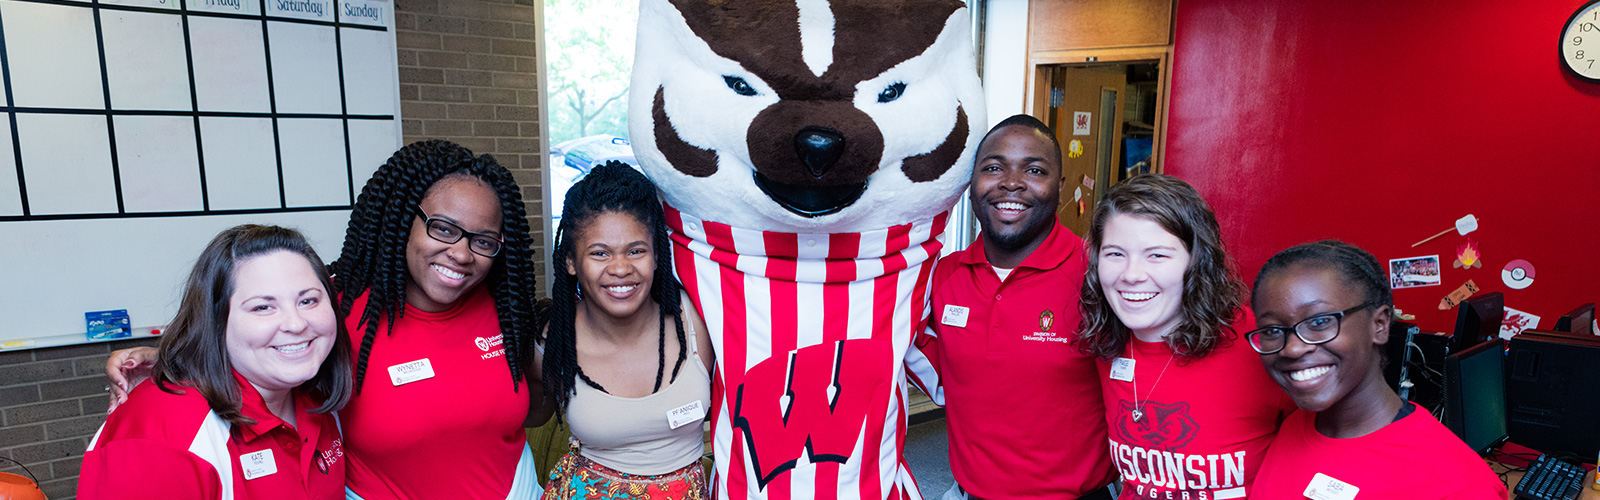 Bucky Badger with Residence Life staff